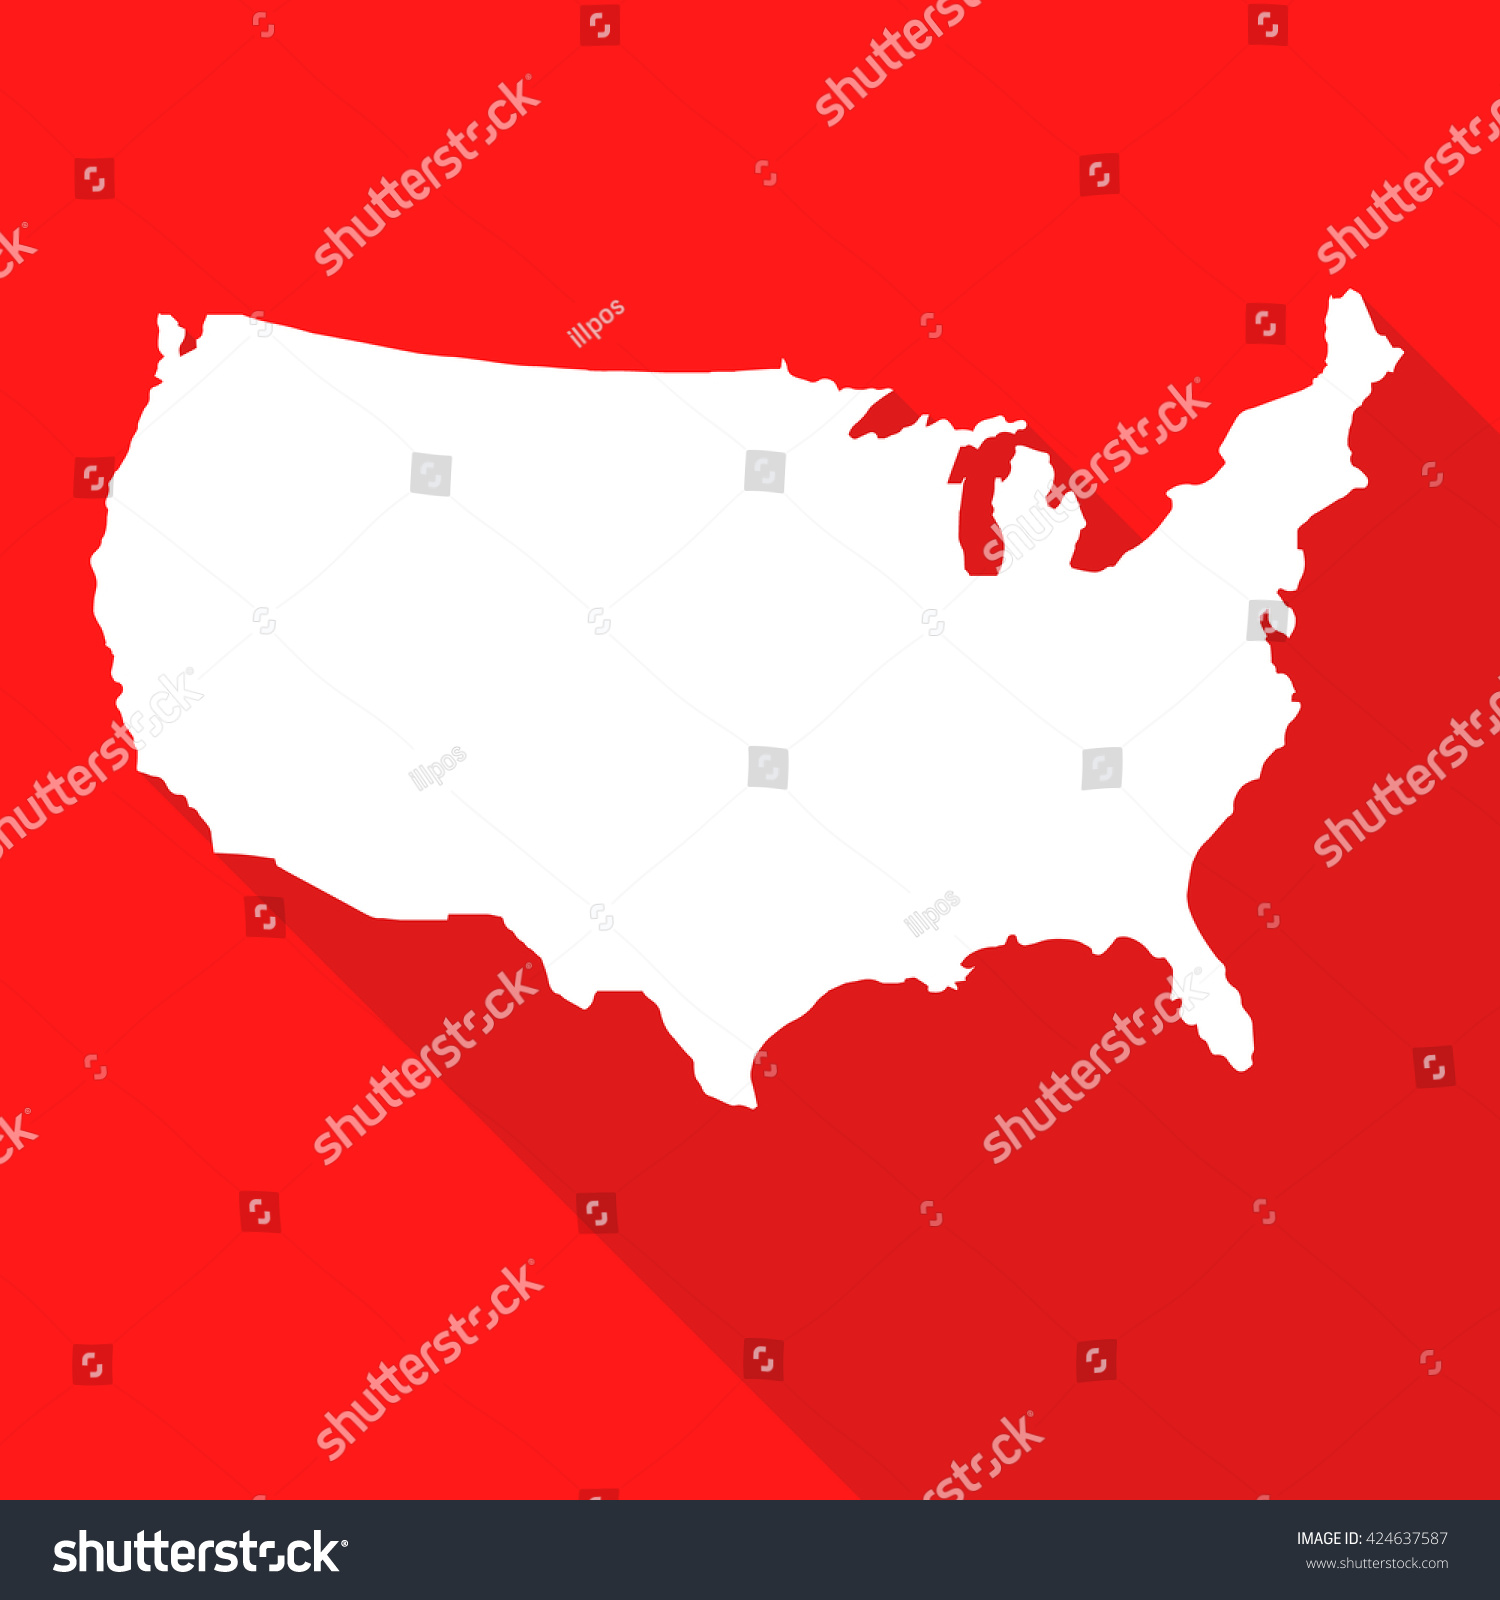 United States Americausa White Mapborder Flat Stock Vector - Us map all white red background